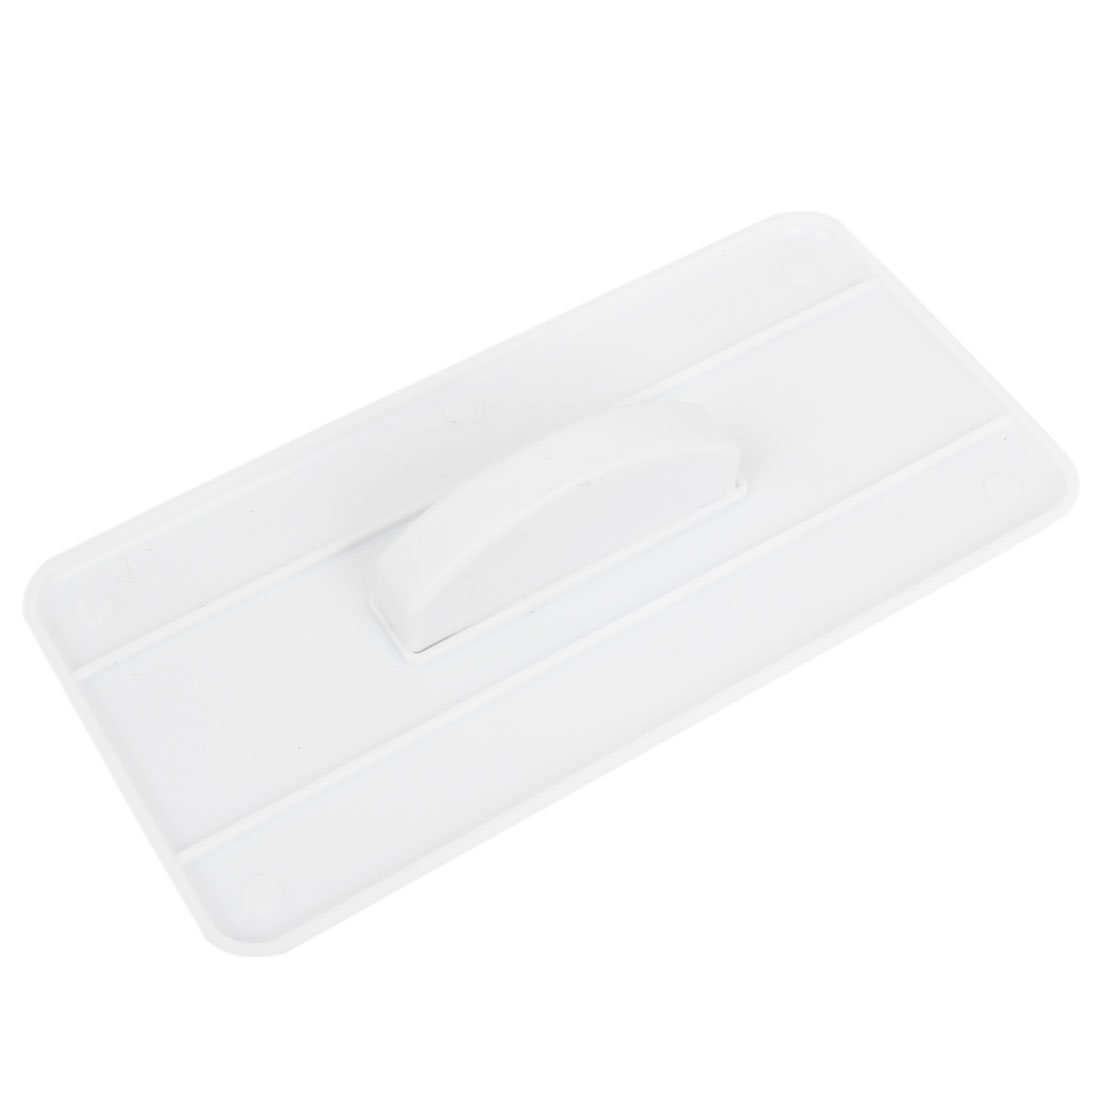 White Polisher Tools Cutter Decorating Fondant Sugarcraft Mold Cake Smoother